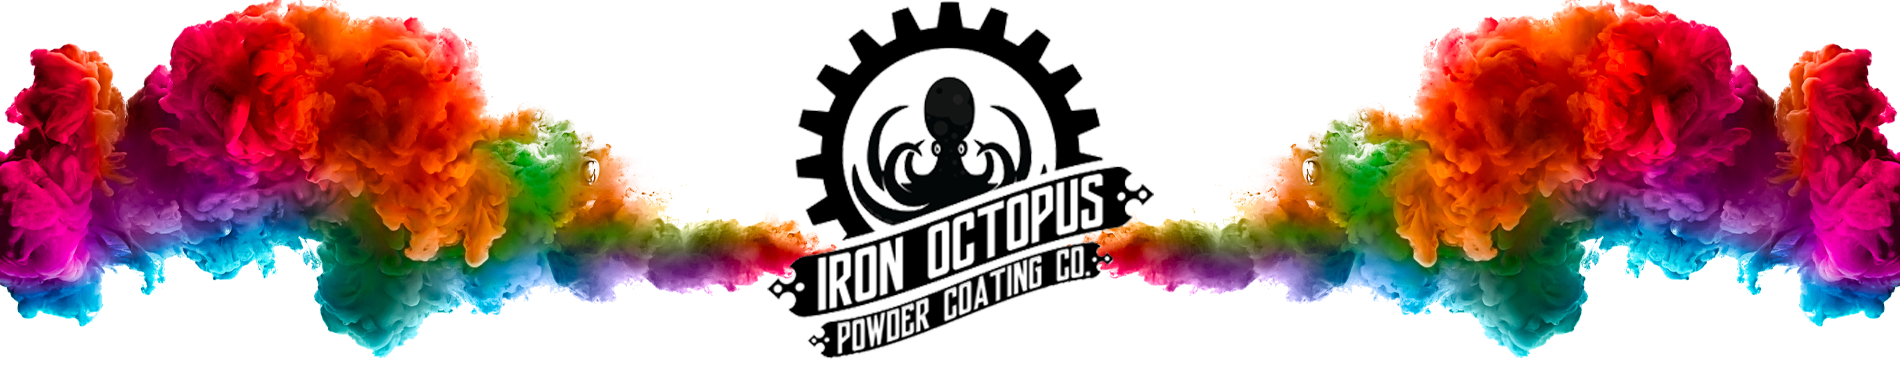 Galvanising Services - Iron Octopus Powder Coating Co  - www